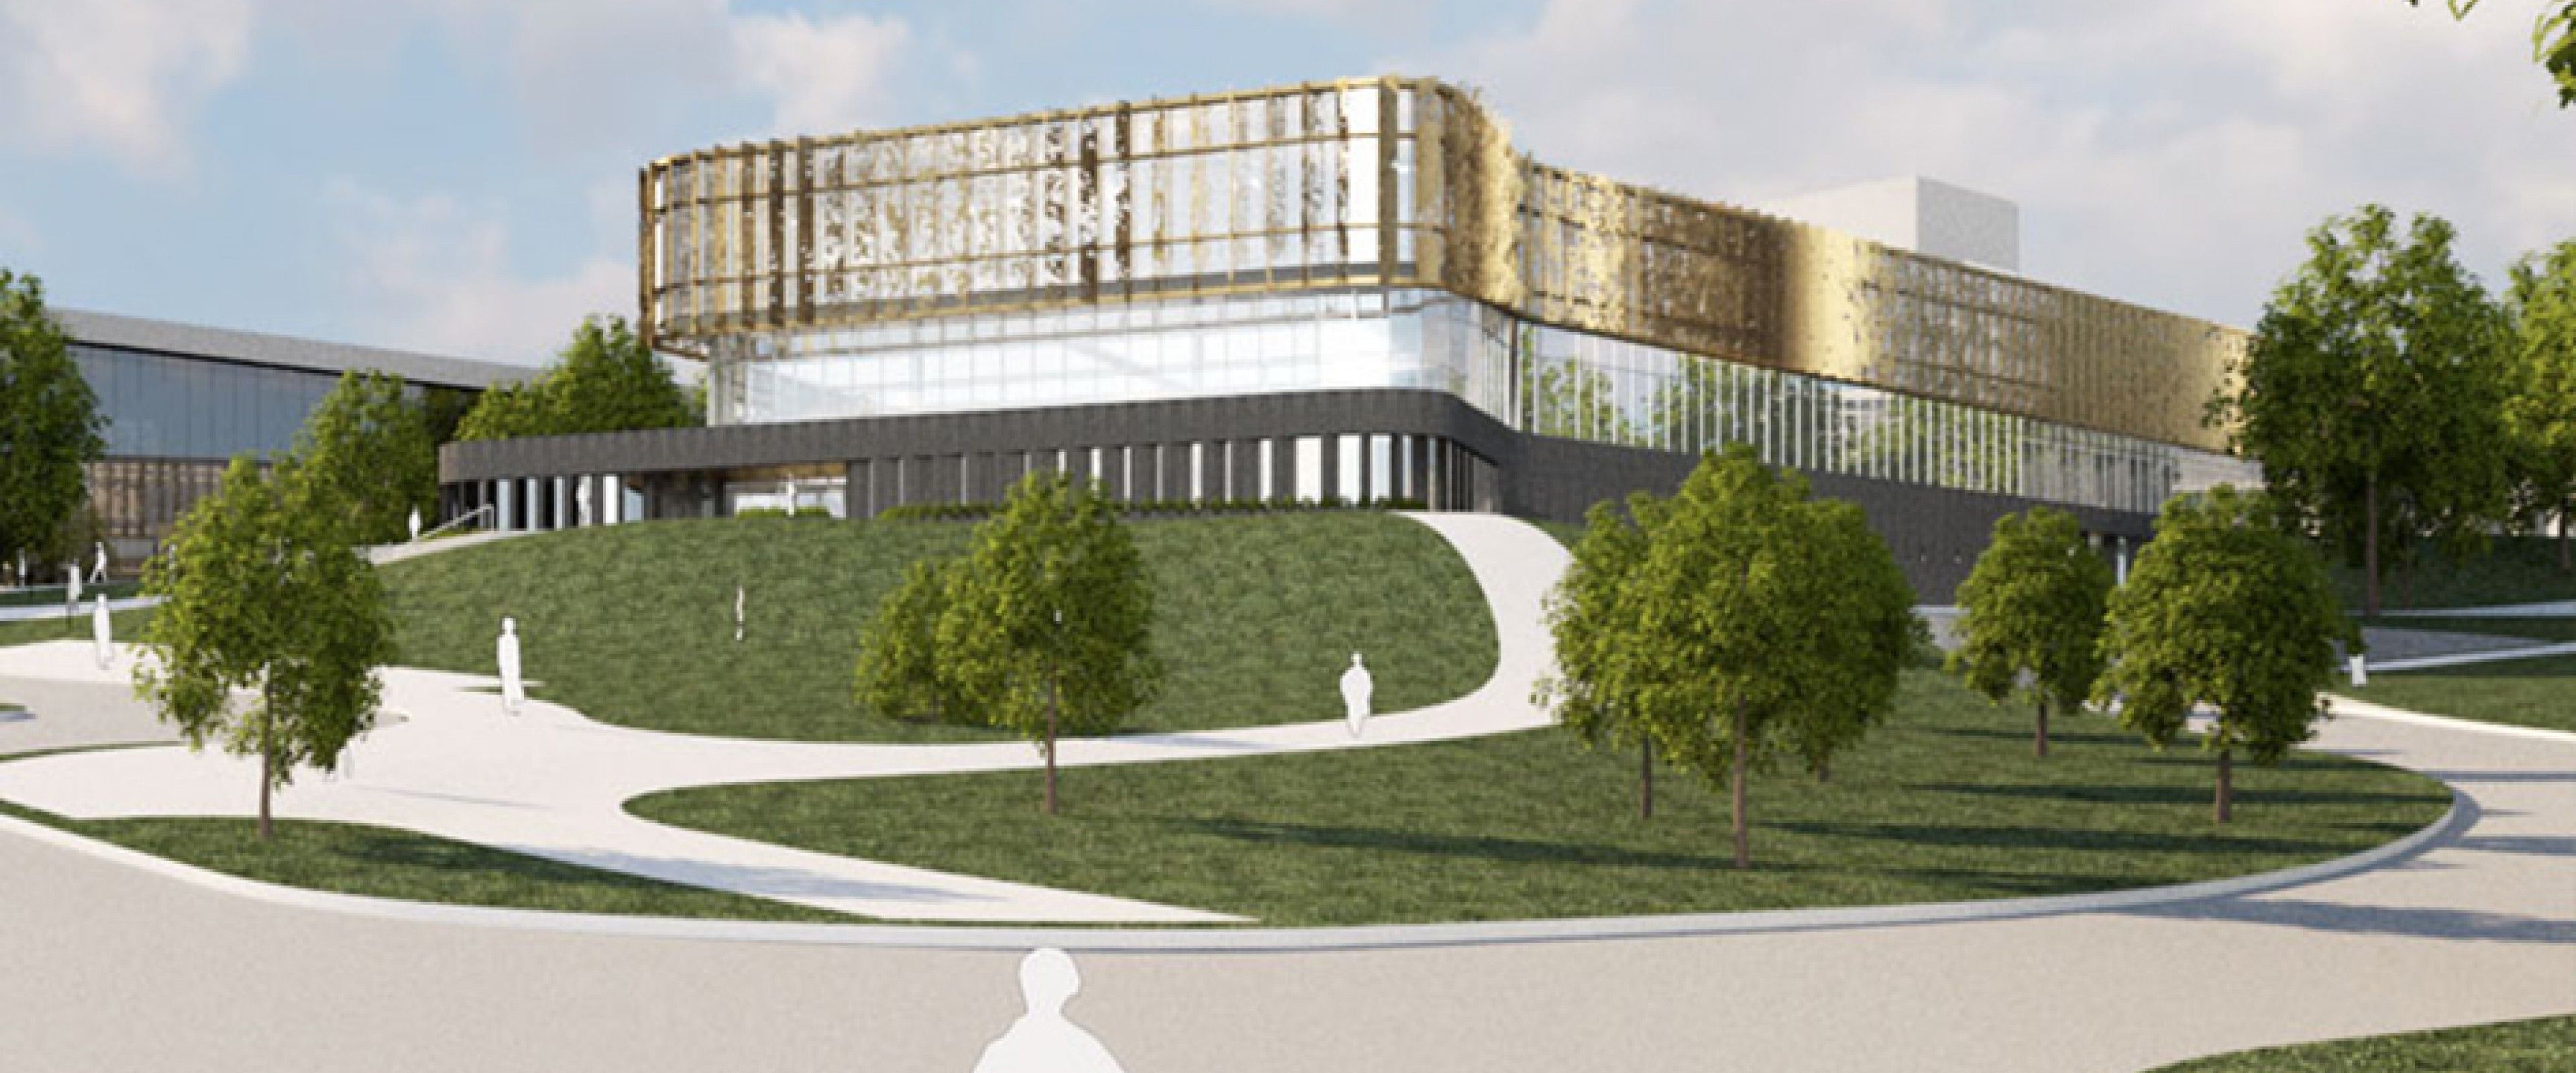 Rendering of the bright, new student center on a raised hill with a winding sidewalk leading to it